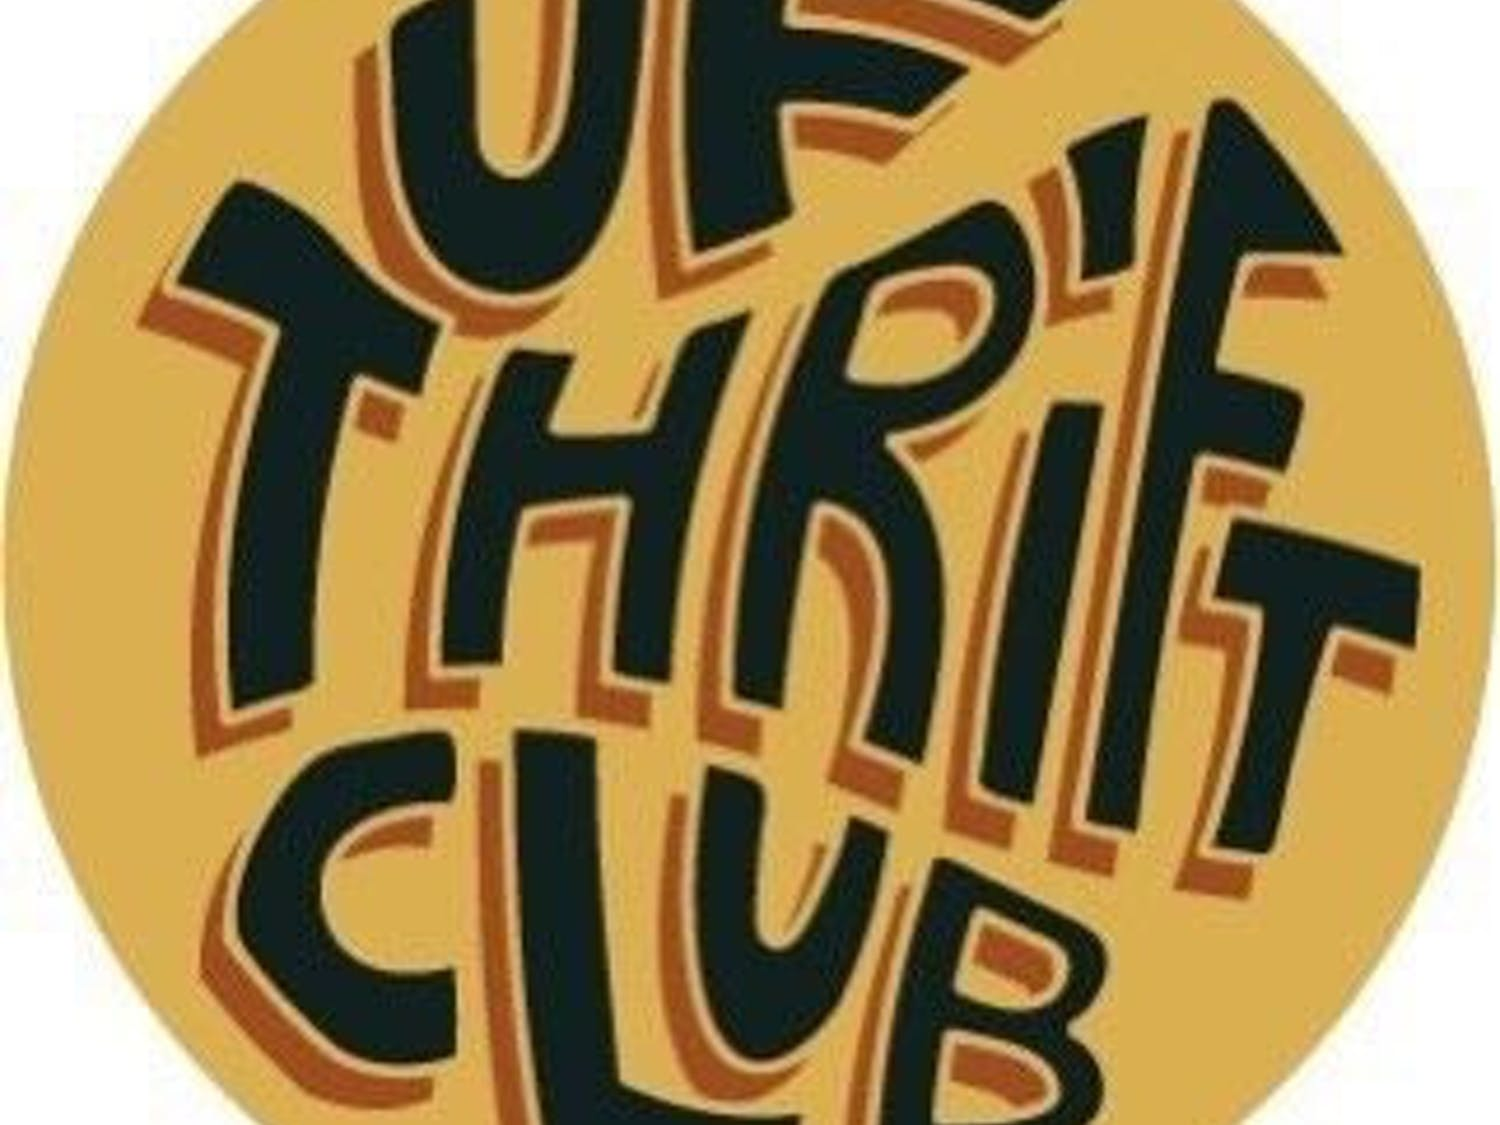 Thrifting Club hopes to educate its members on issues pertaining to fast fashion with activities and workshops once it can meet in person.